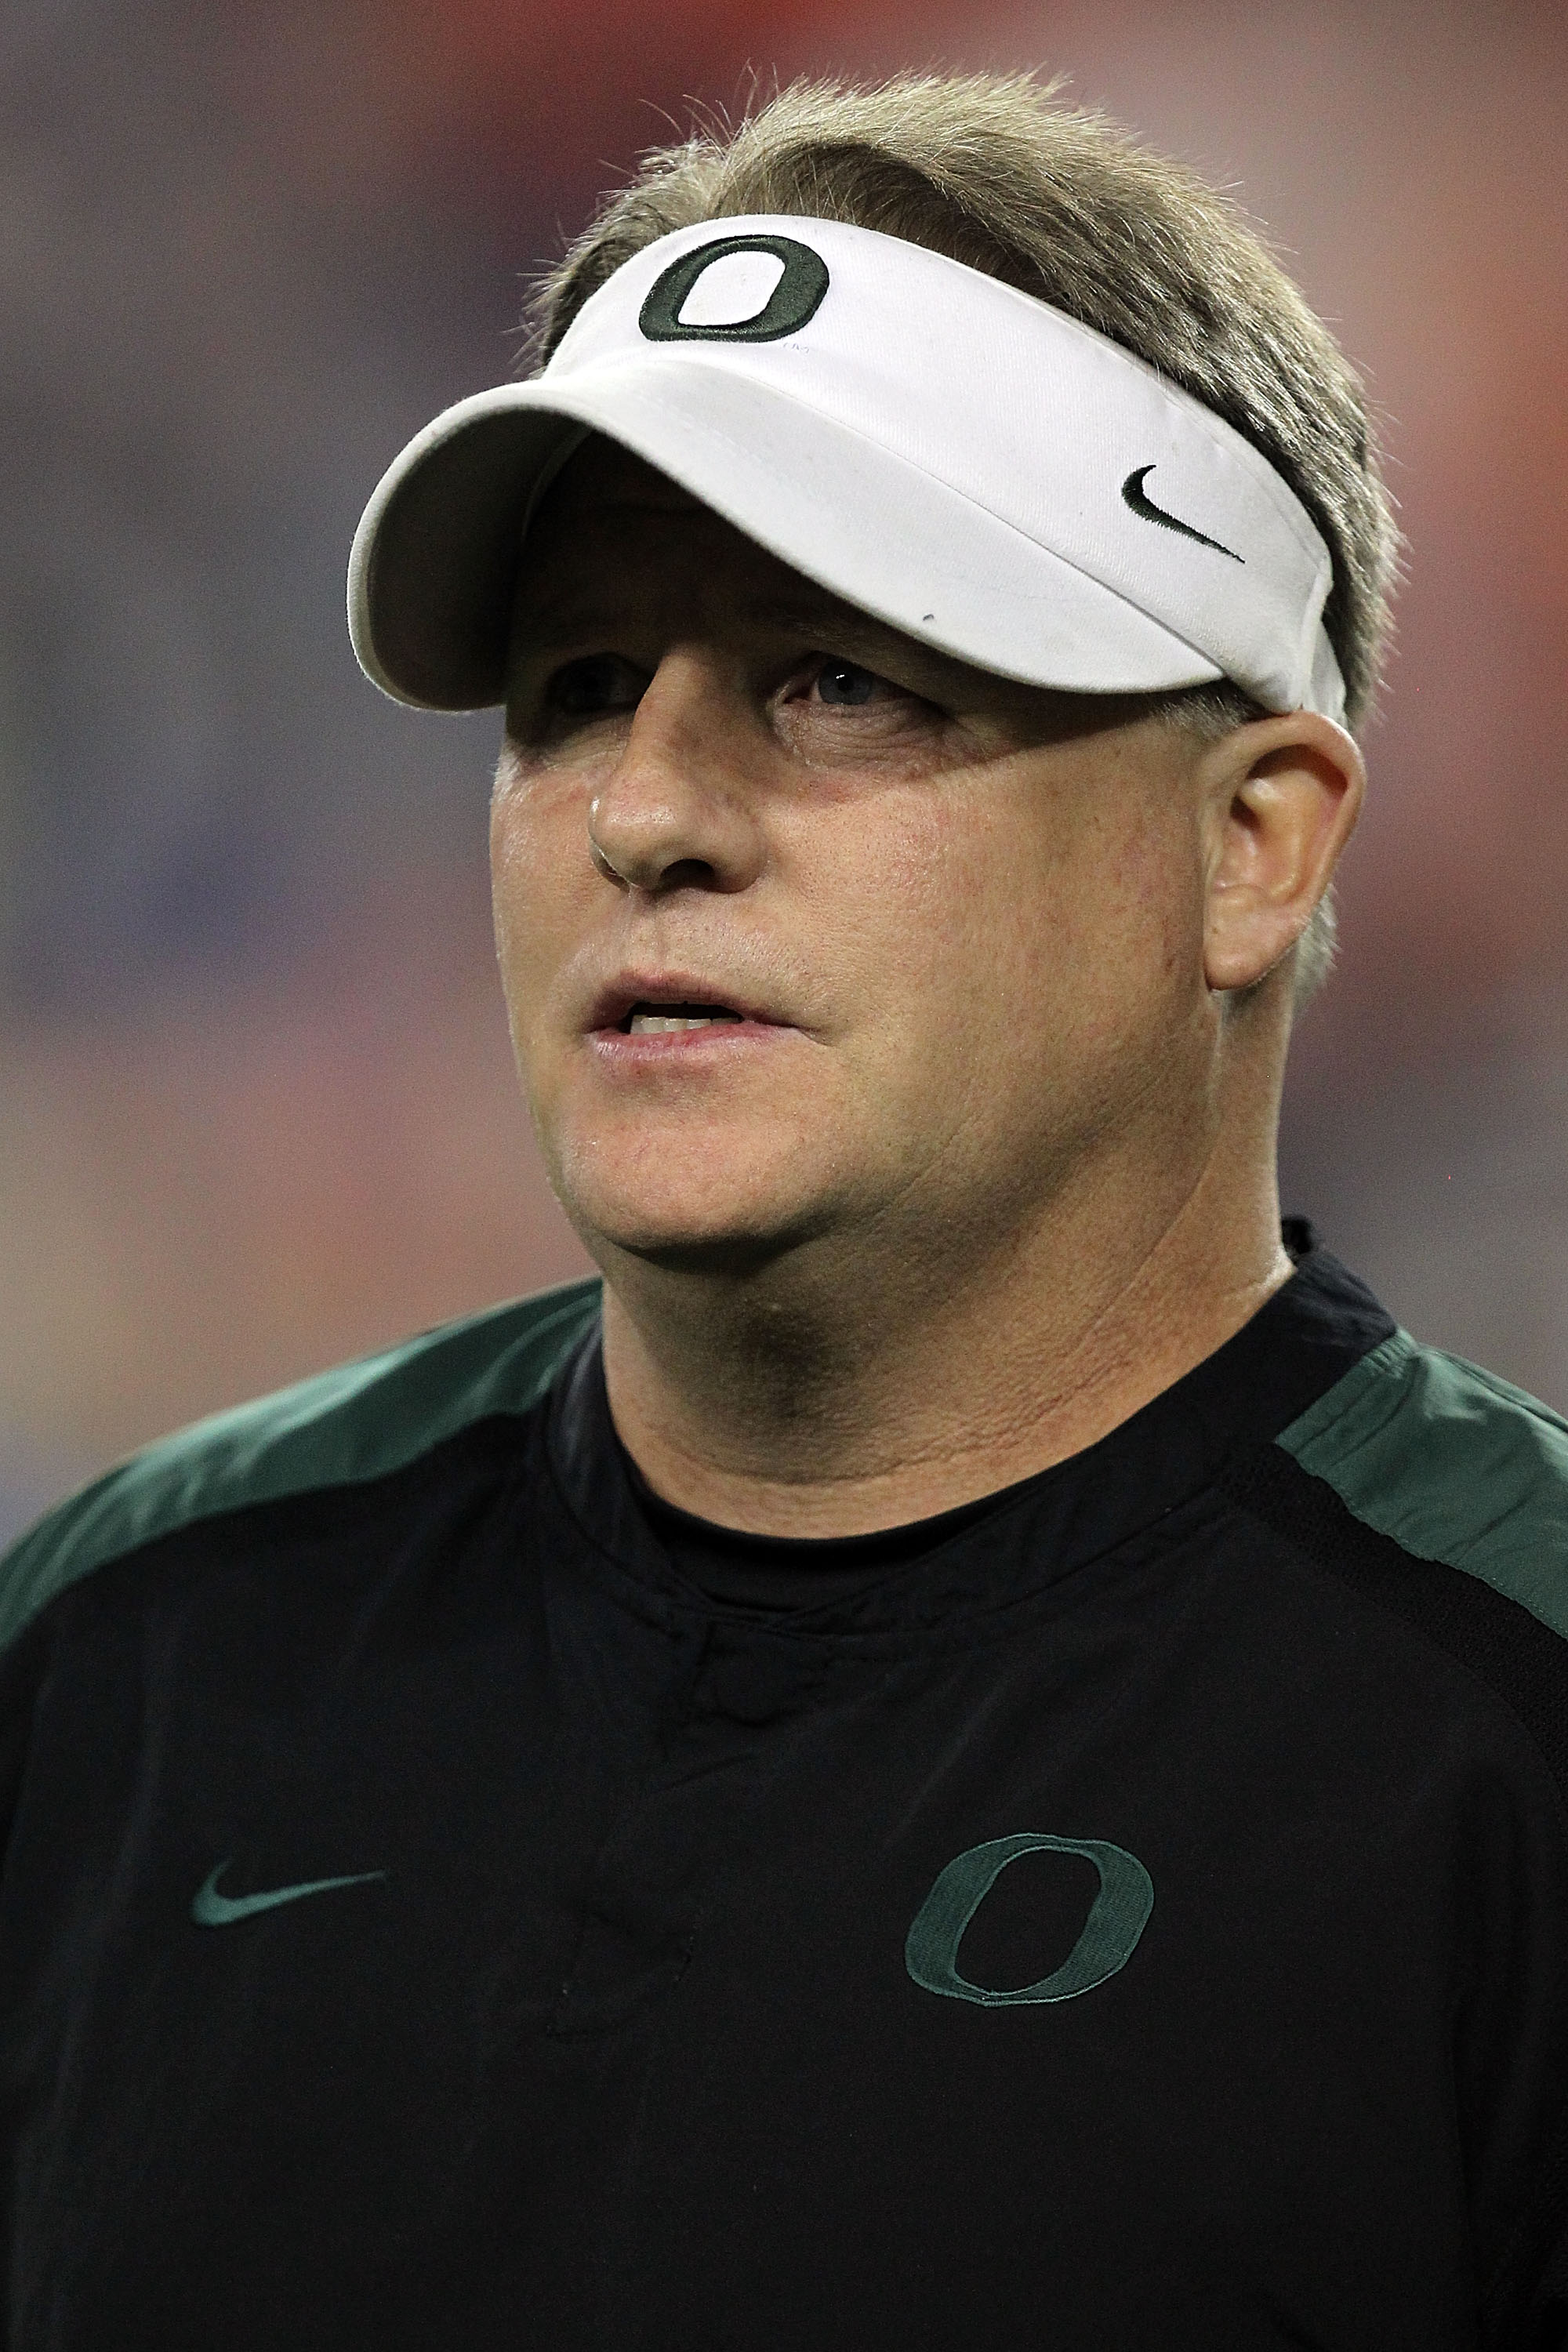 GLENDALE, AZ - JANUARY 10:  Head coach Chip Kelly of the Oregon Ducks looks on before taking on the Auburn Tigers in the Tostitos BCS National Championship Game at University of Phoenix Stadium on January 10, 2011 in Glendale, Arizona.  (Photo by Ronald M